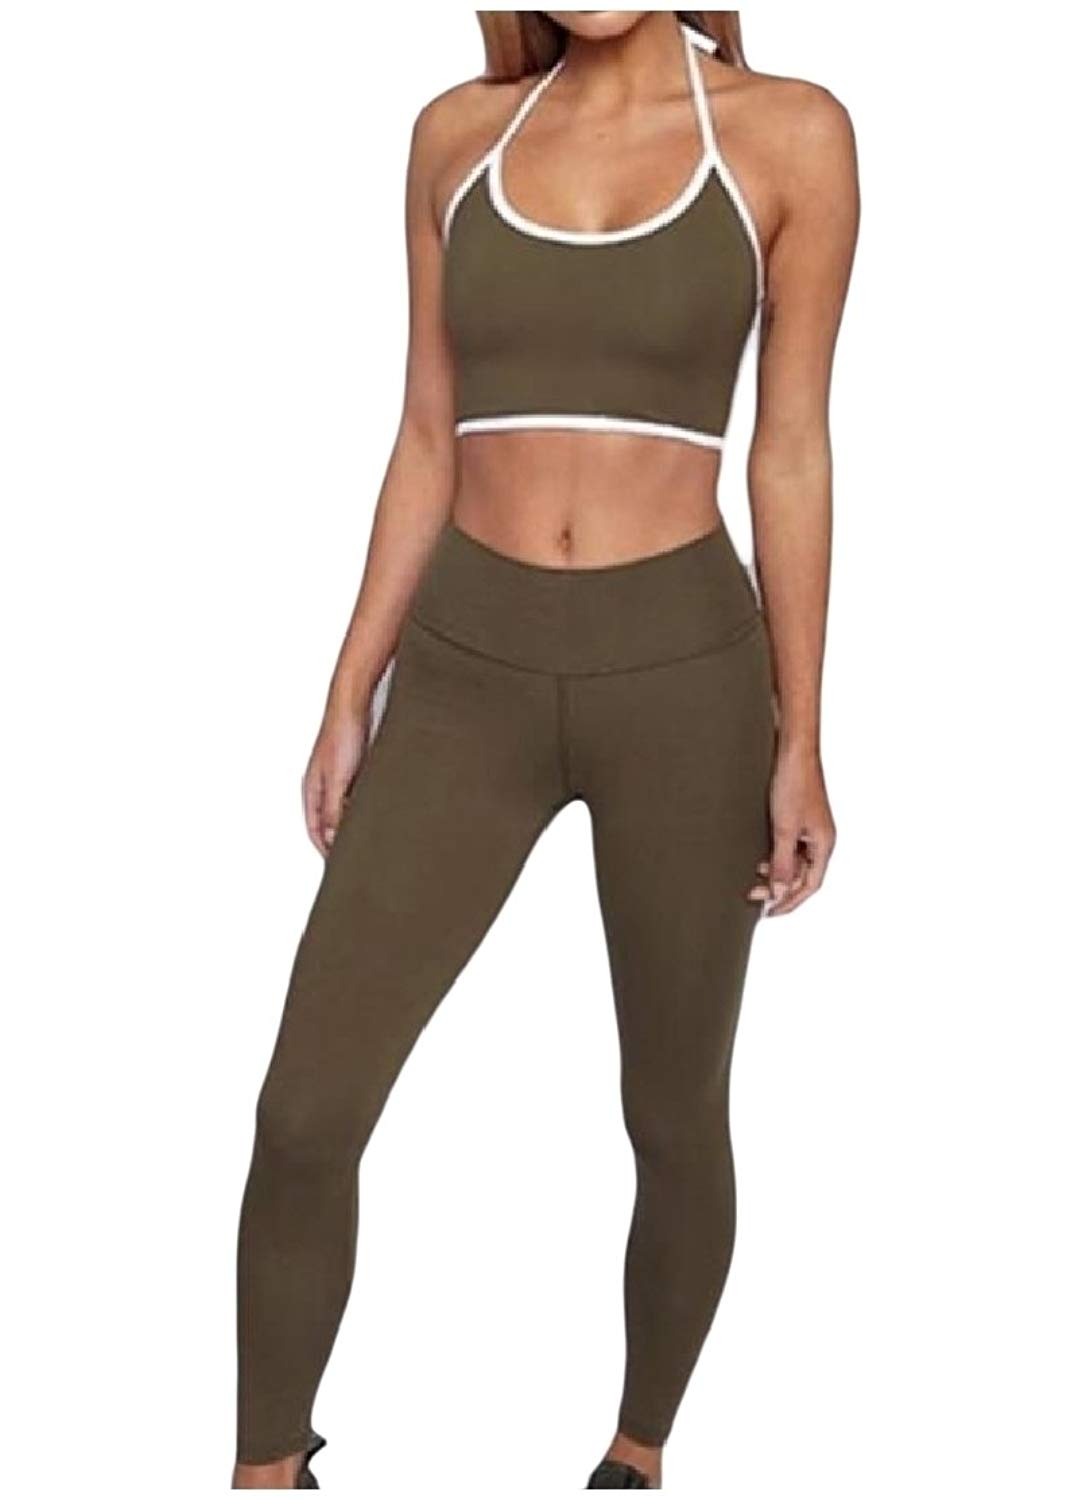 YUNY Women's Regular Fit Backless Strappy Camisole Sweatsuit Set